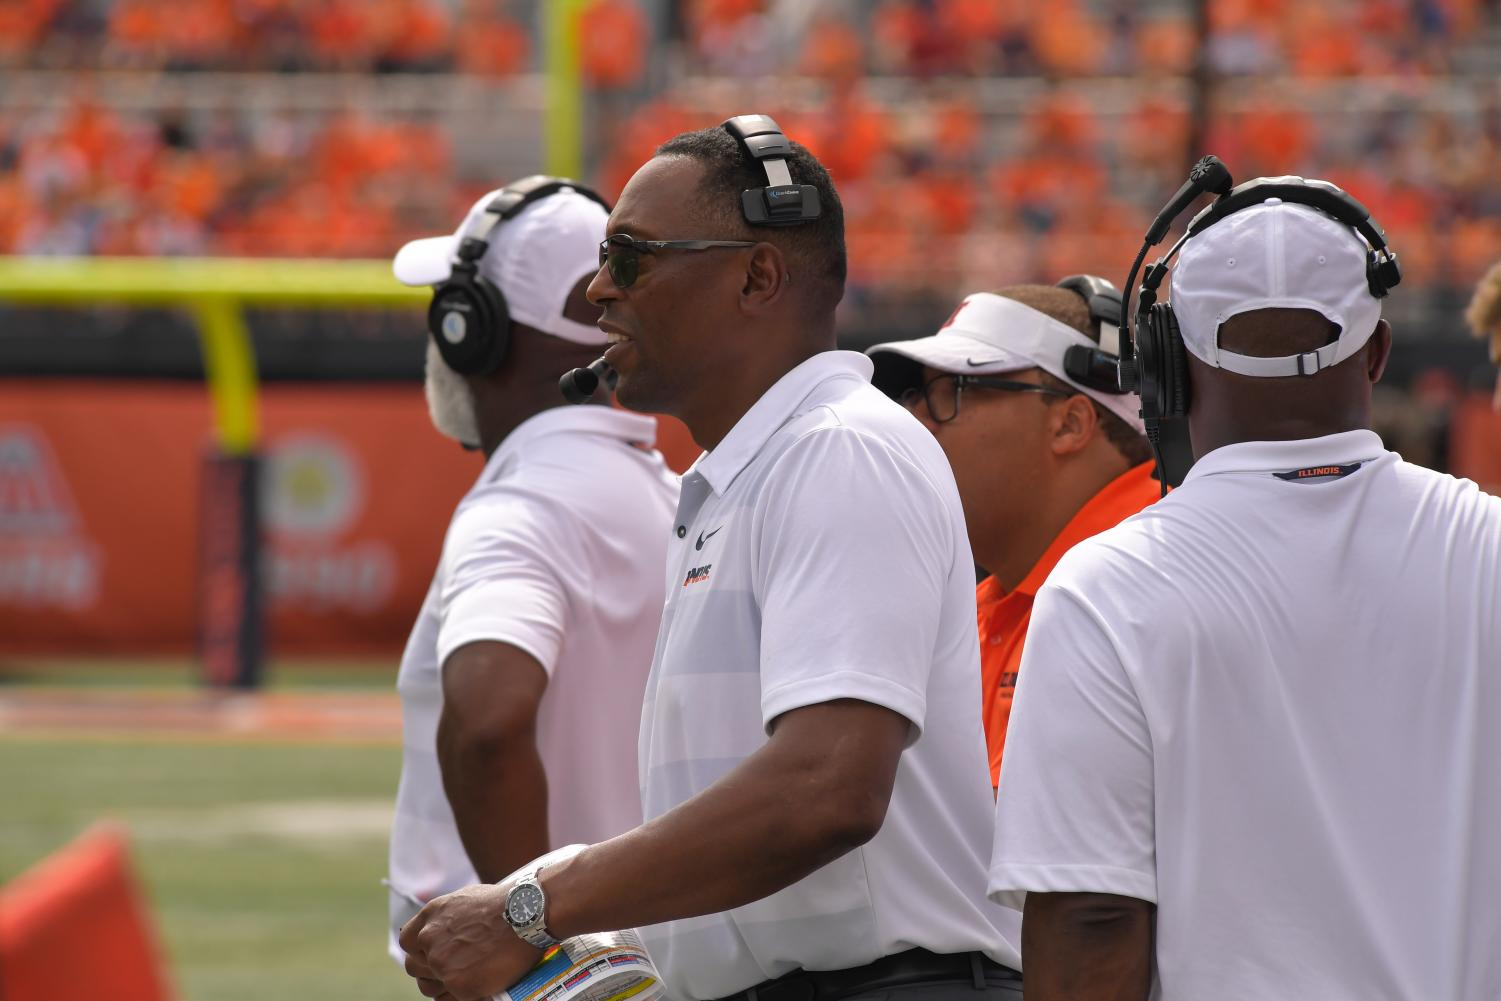 Illini defensive coordinator Hardy Nickerson on the sidelines during a game. Nickerson announced his resignation from the football program Monday.